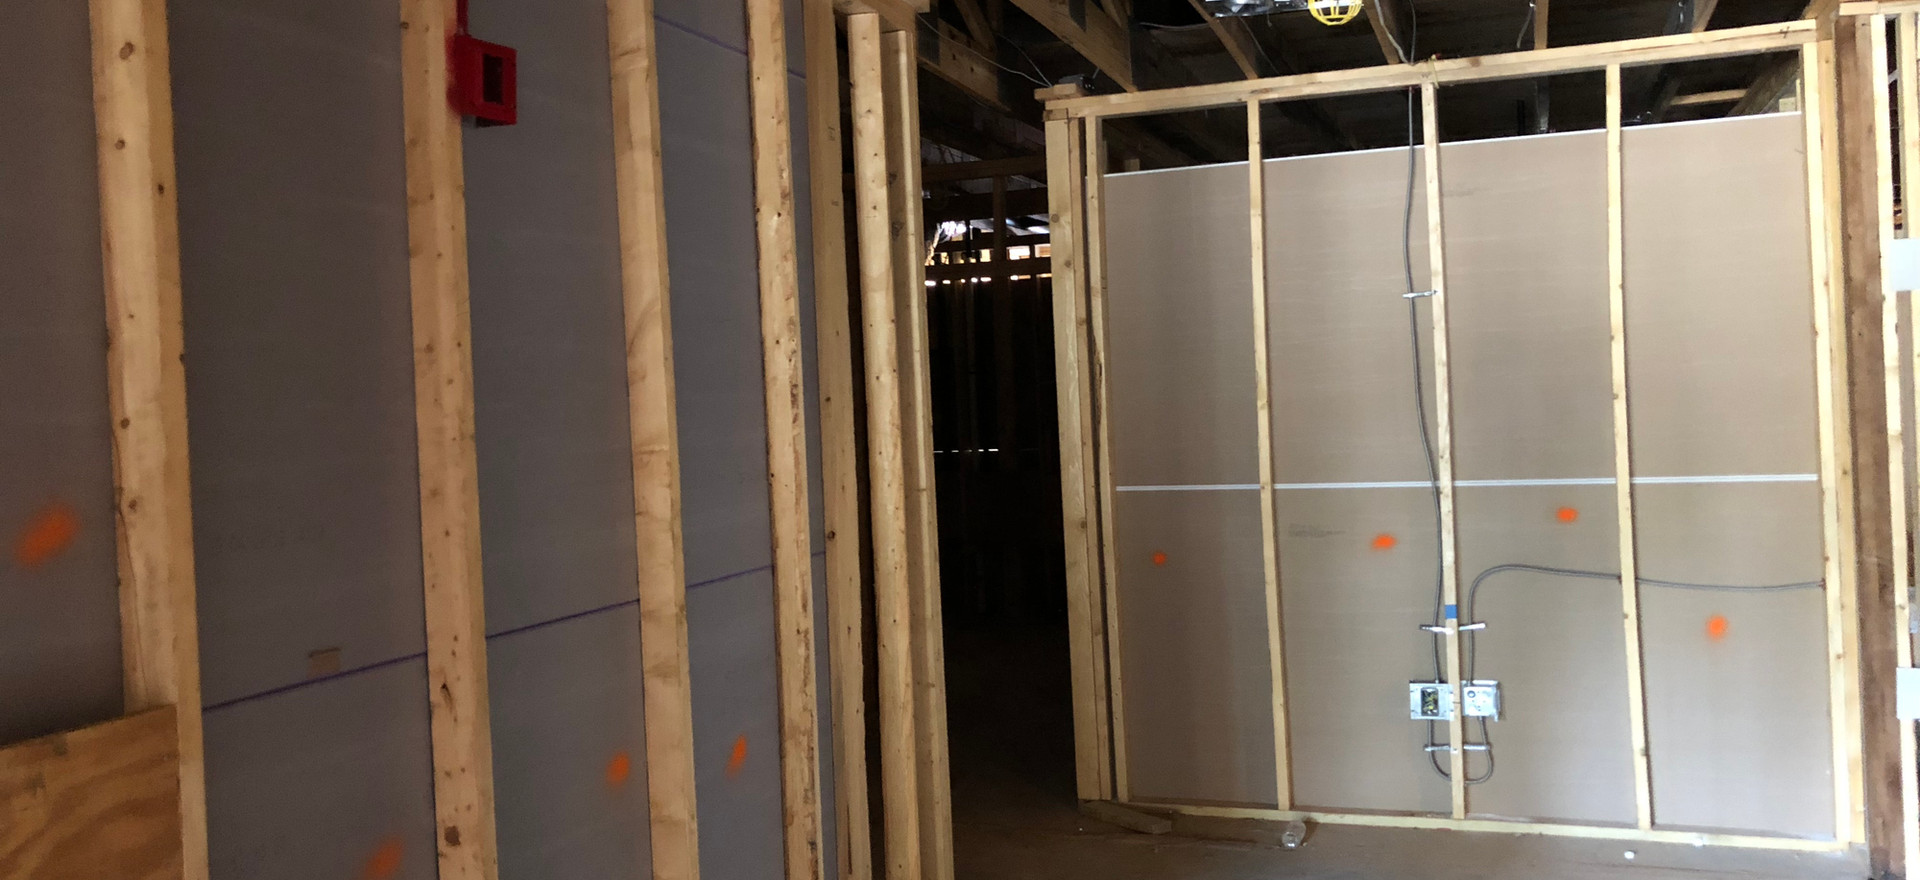 Drywall is Going Up